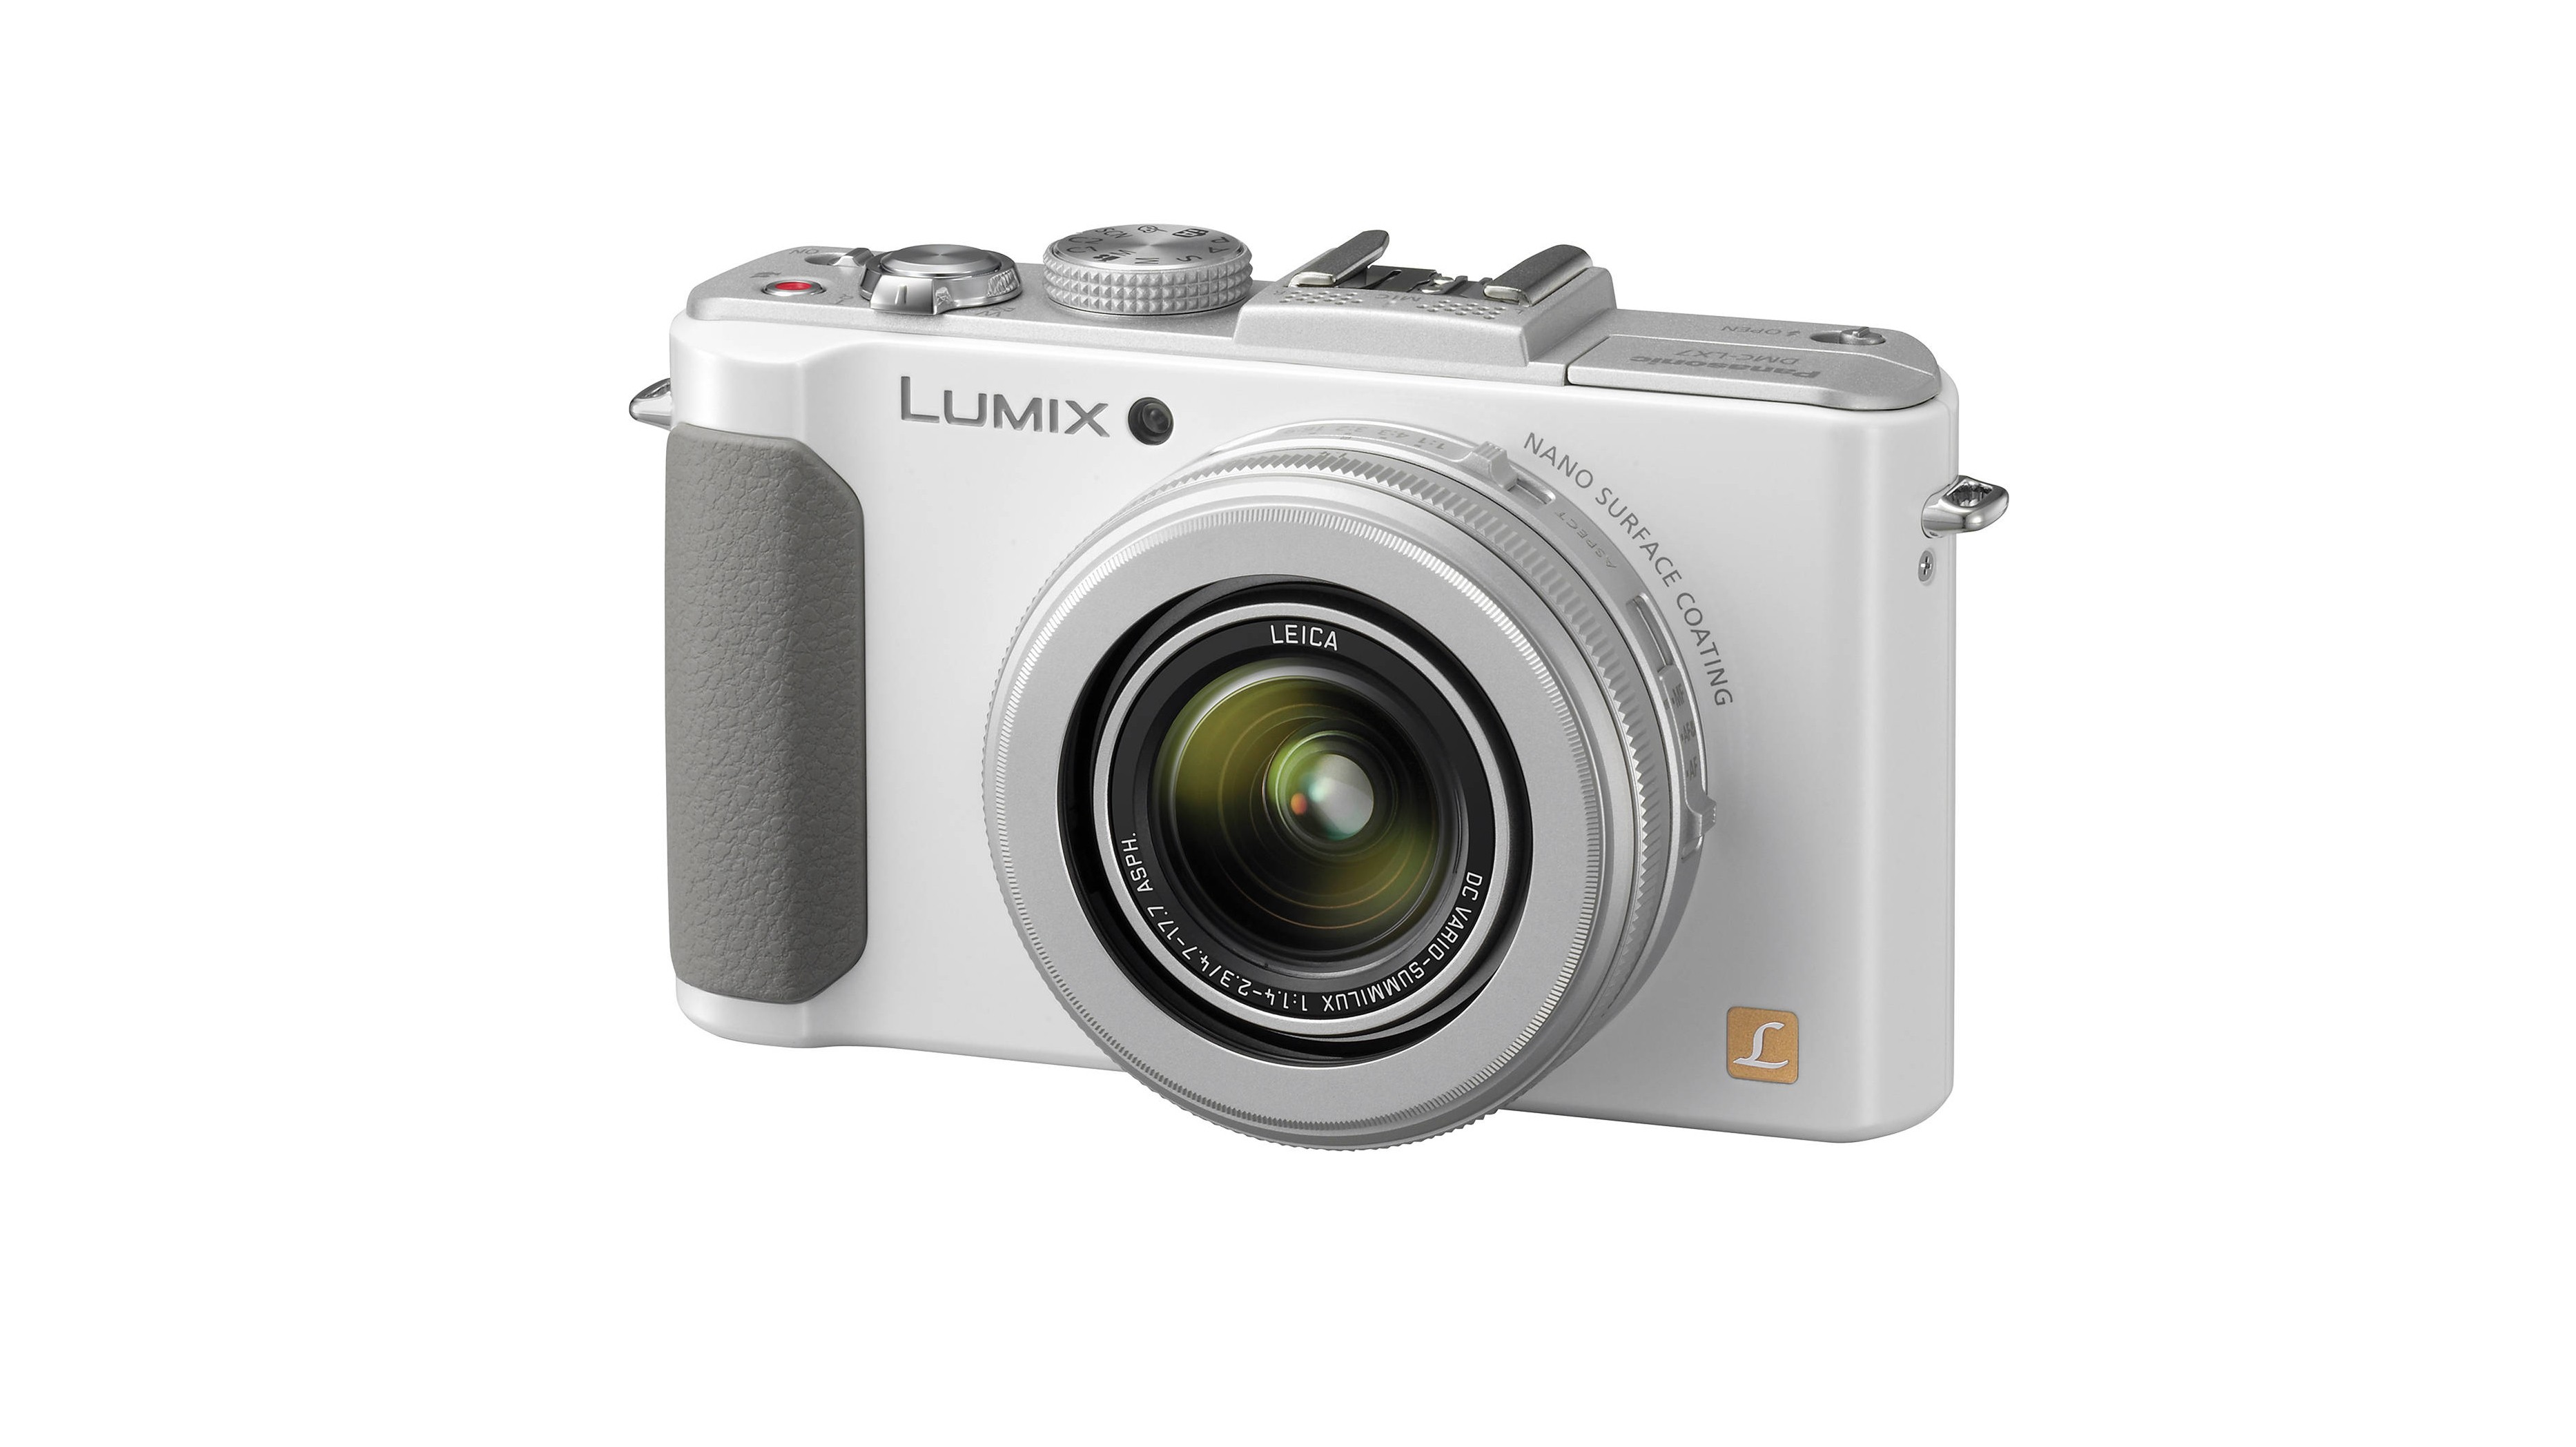 lumix camera hi tech - photo #6